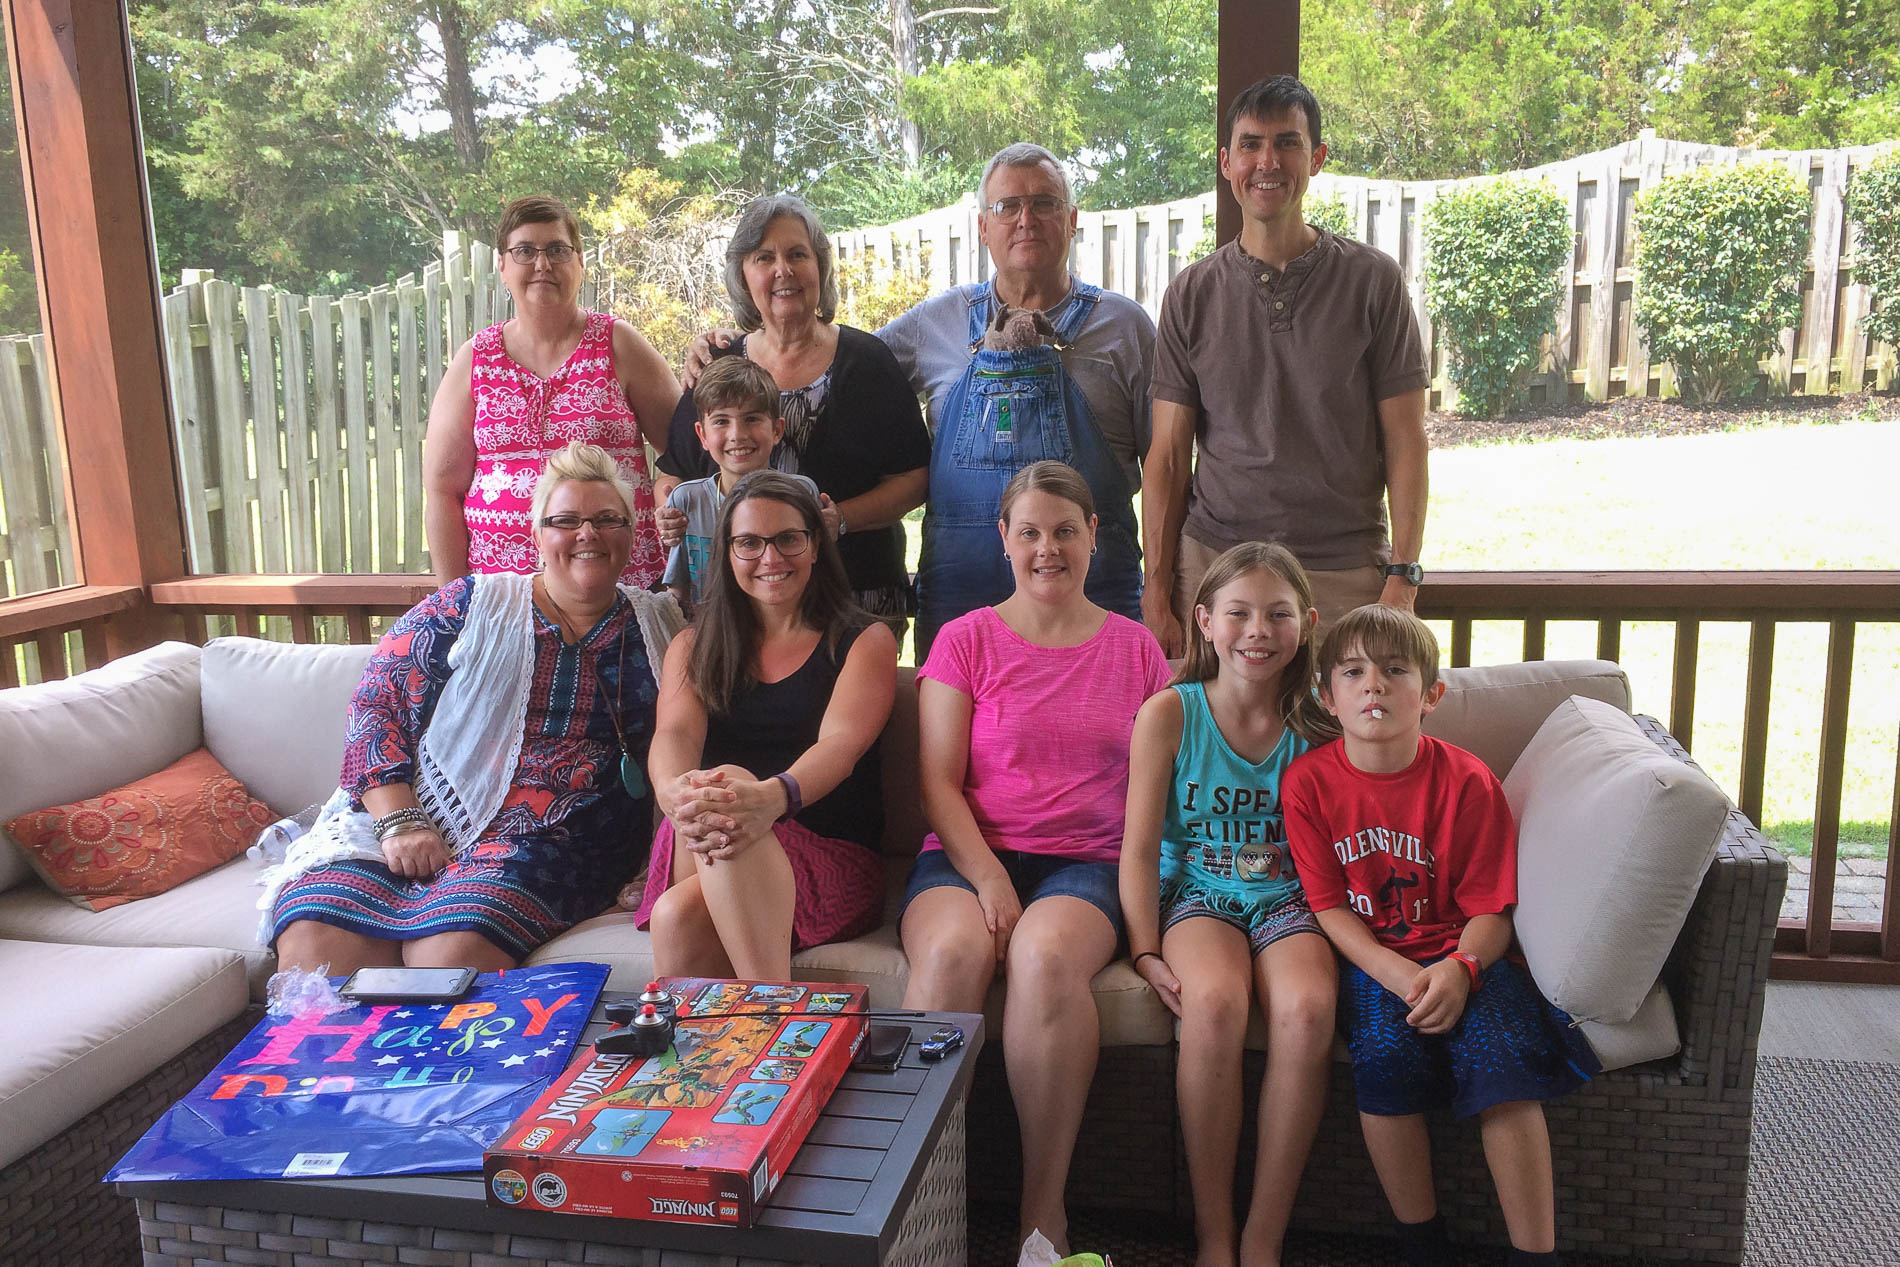 Weston's Family Birthday Party 2017: Let's Talk About Uranus